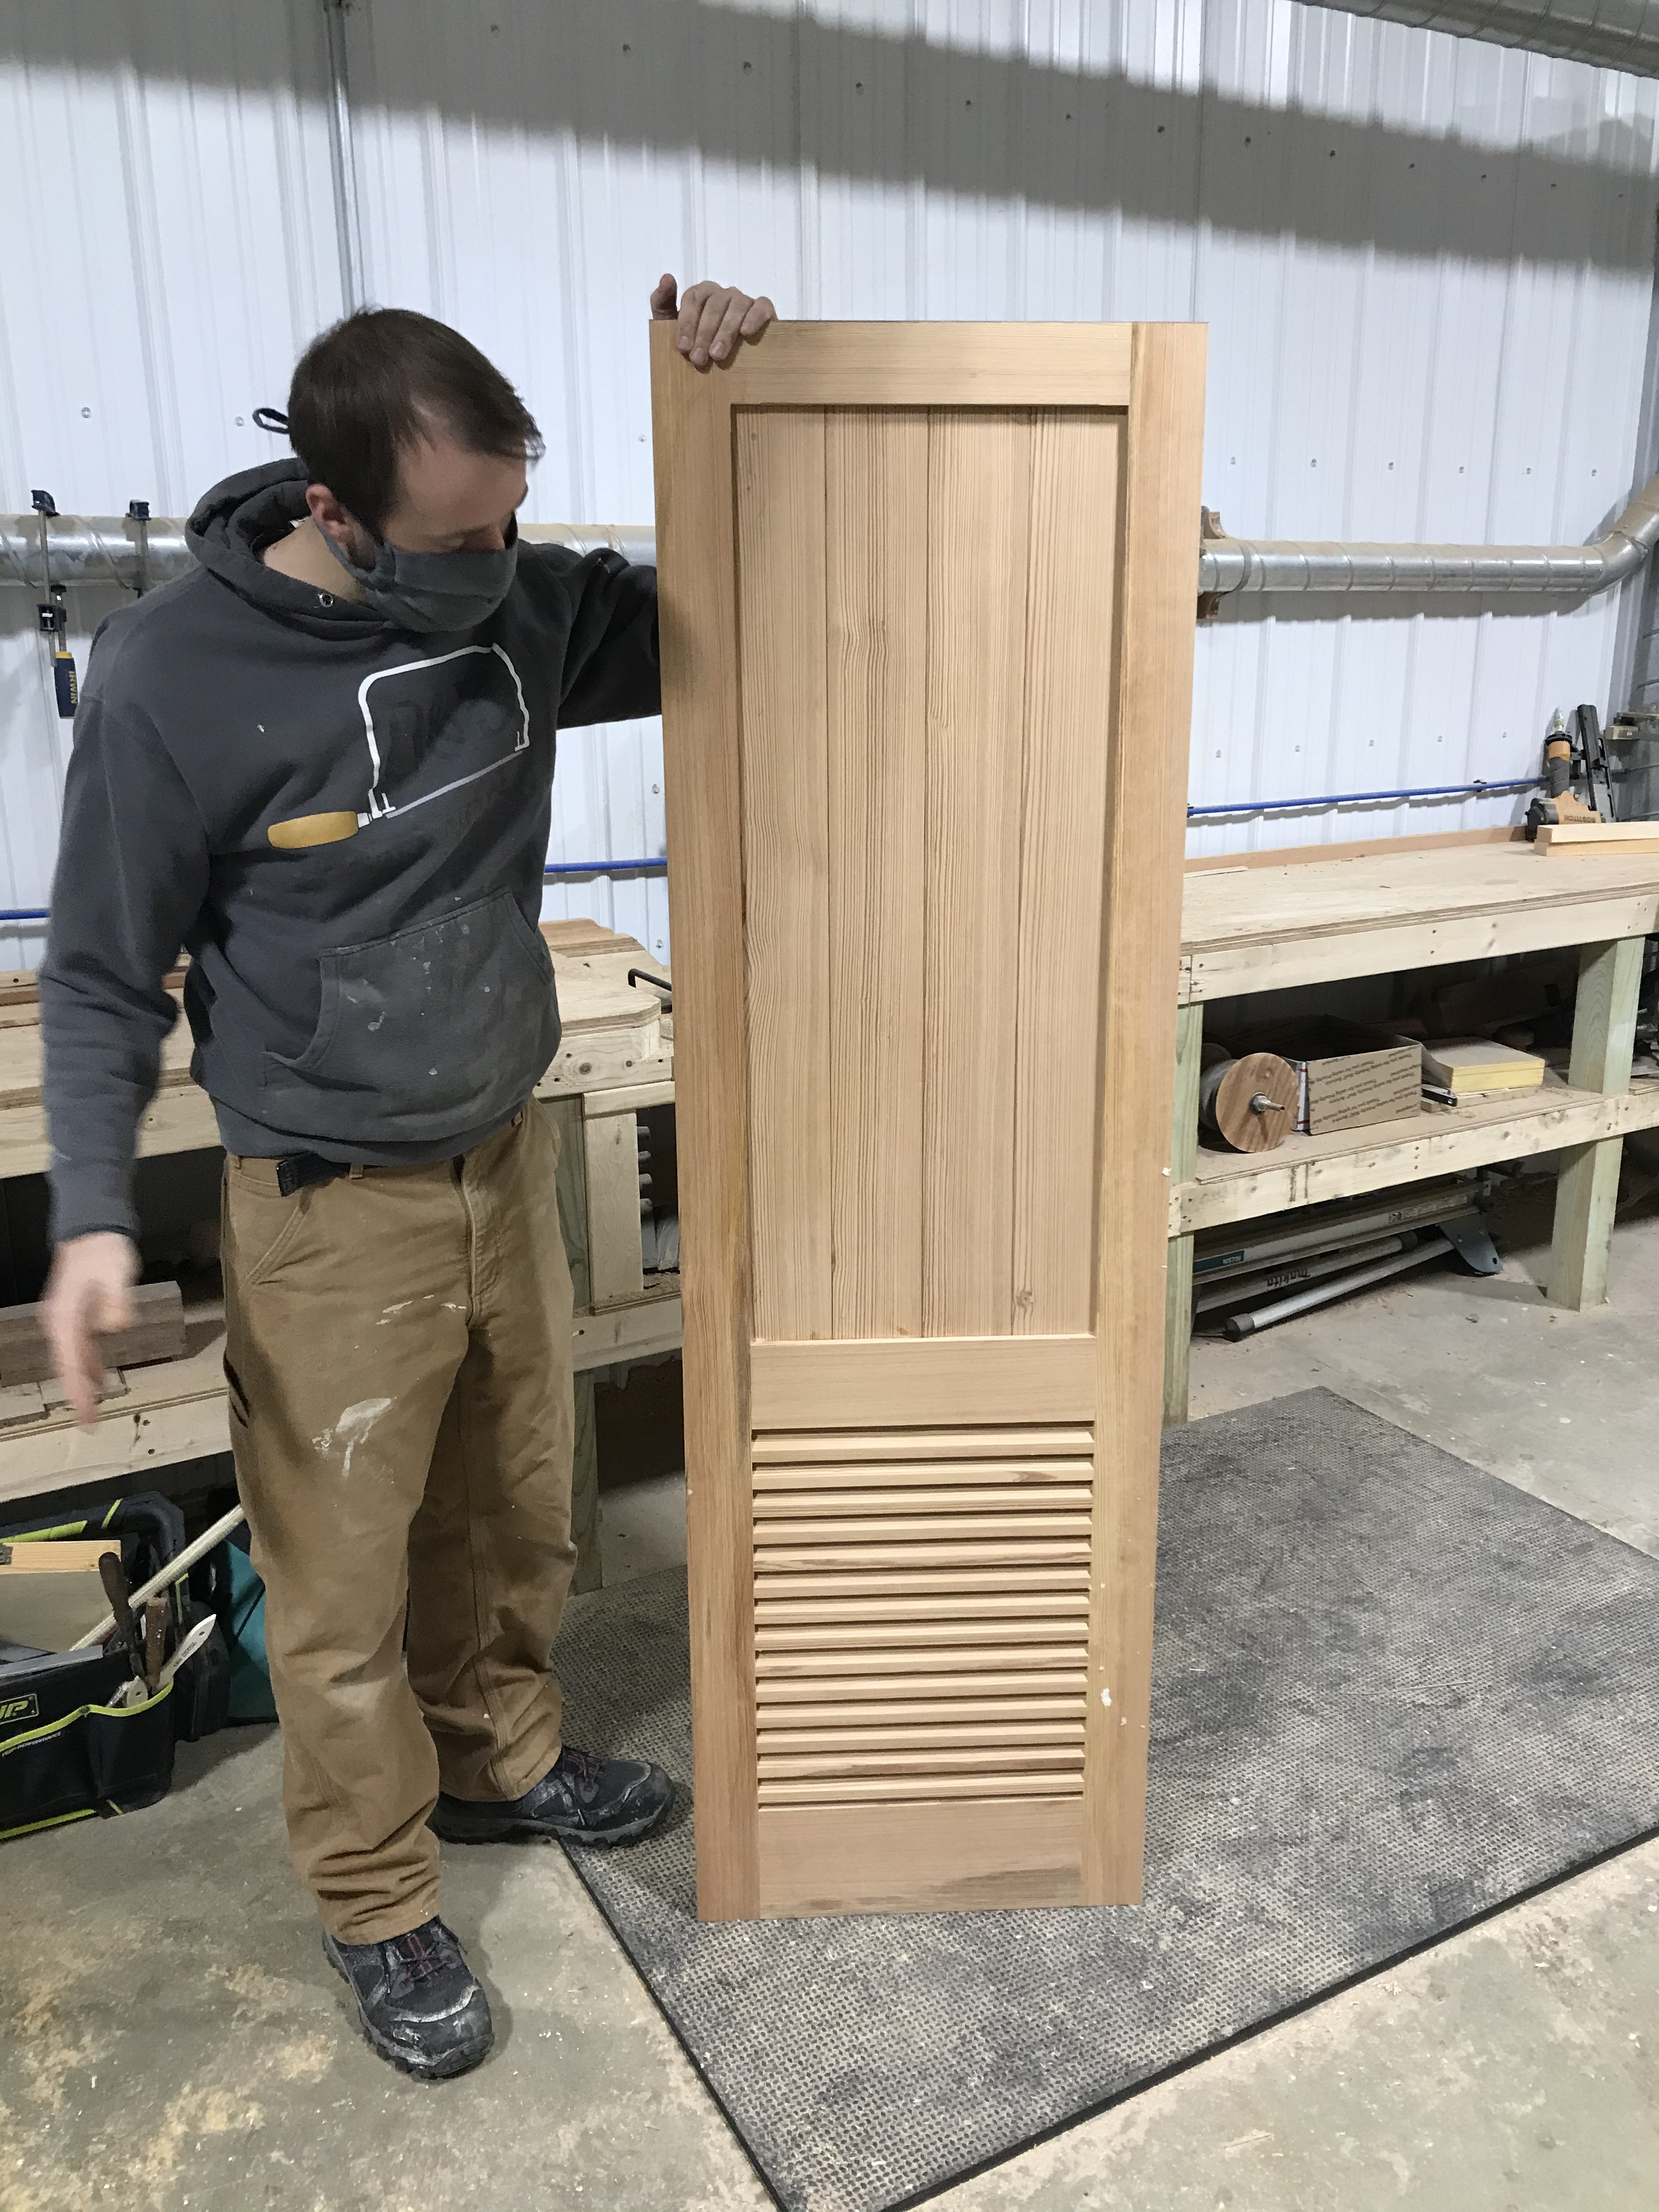 This image shows one of our newest carpenters Kazimieras, who joined a few short months ago.  He has been the man behind the head compartment installation in the Aft Cabin.  Here he is showing off his most recent craftsmanship.  This door will complete the head compartment project.  It is currently in the paint booth being varnished before installation.  We are all excited to see it hung in place next week.